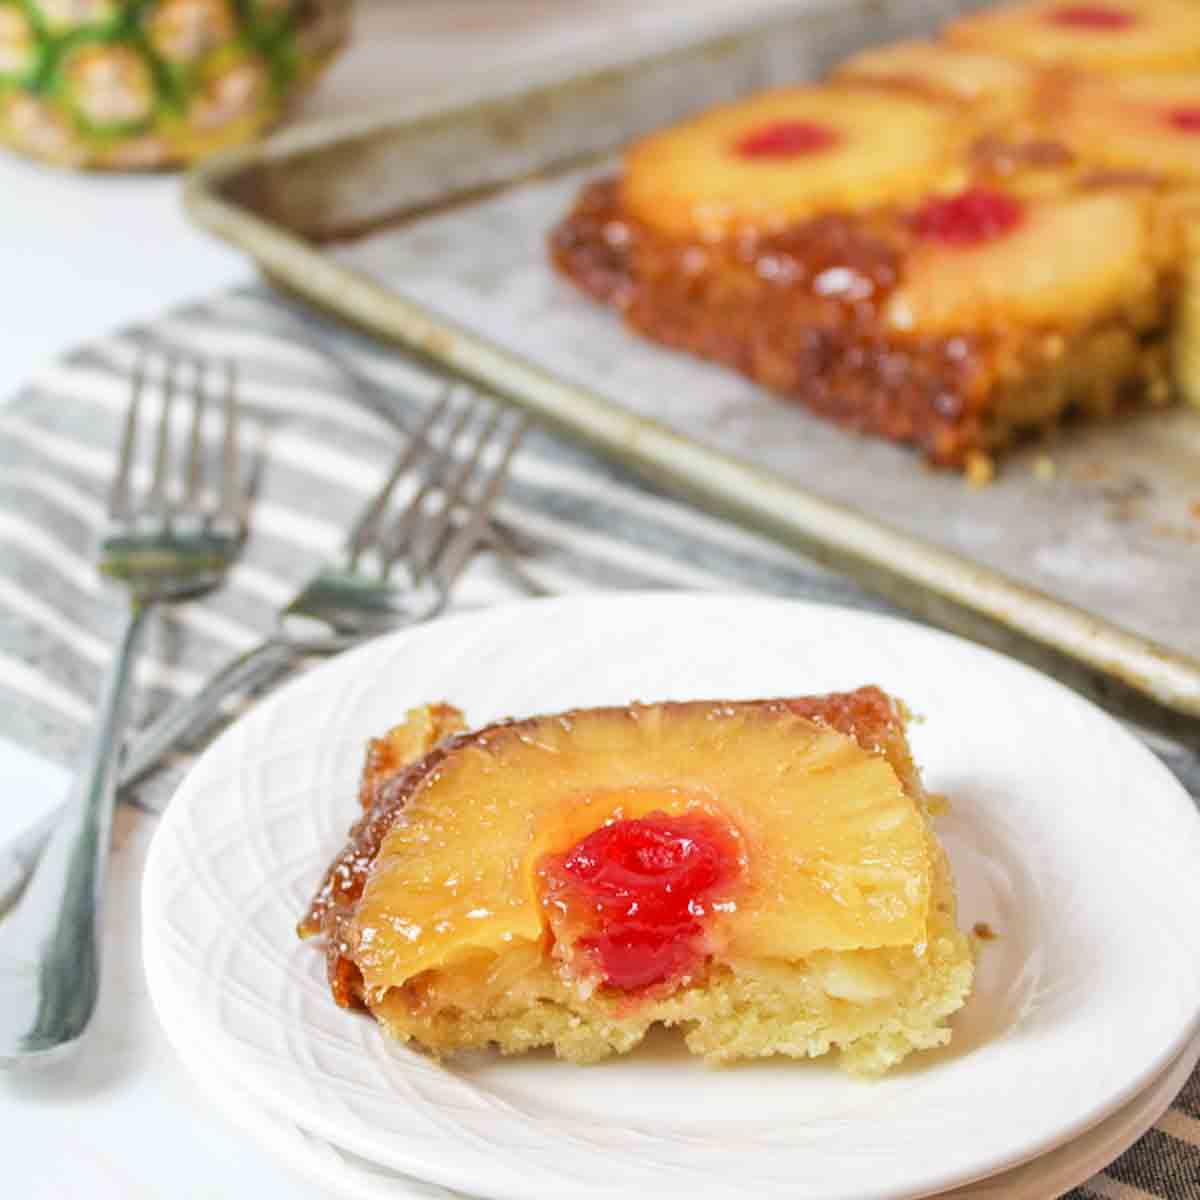 a close up of a slice of pineapple upside down cake with cherry on a white plate with forks and more cake in background